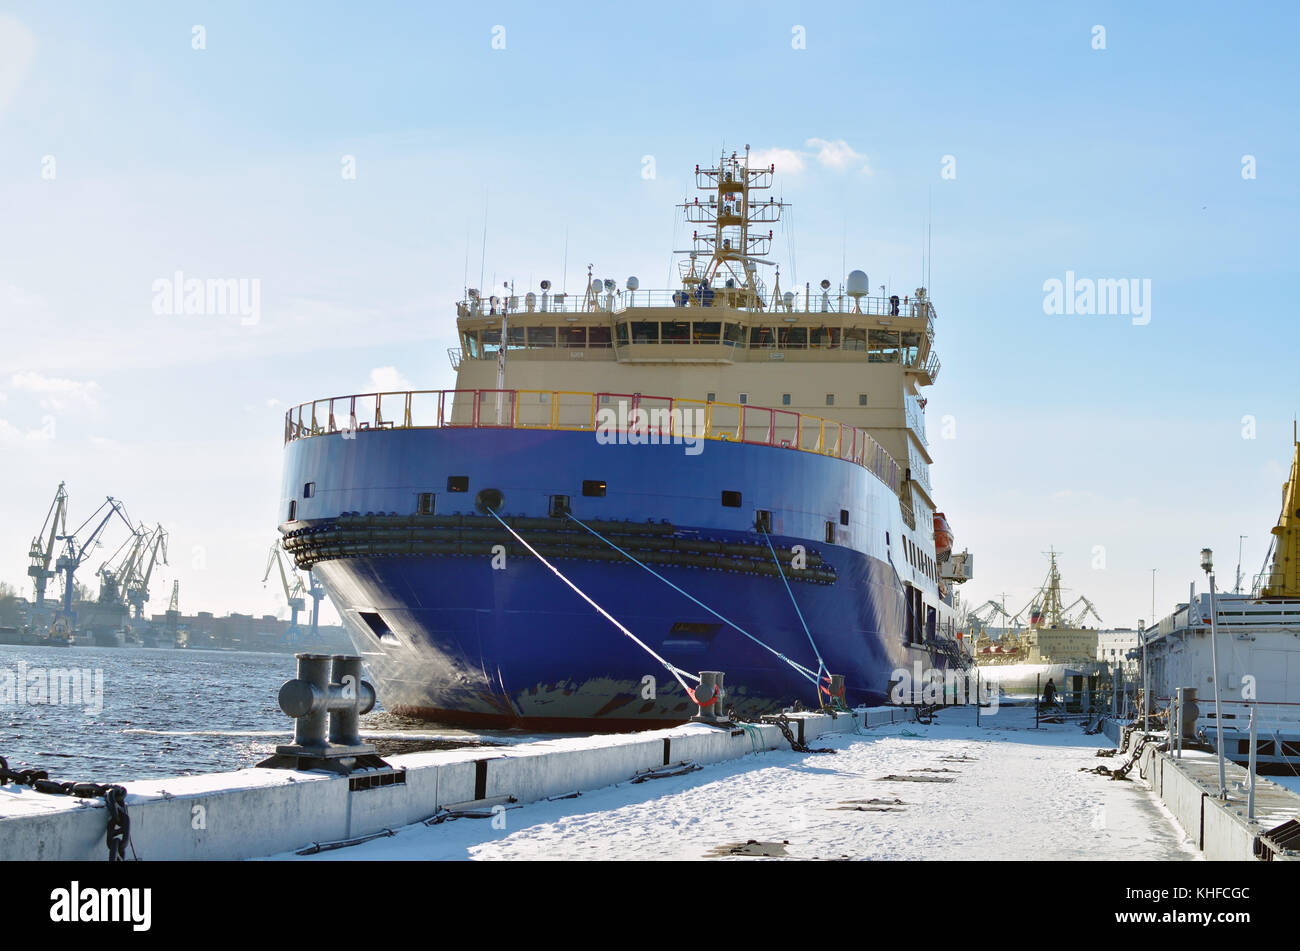 Large nuclear-powered icebreaker moored near the shore. - Stock Image